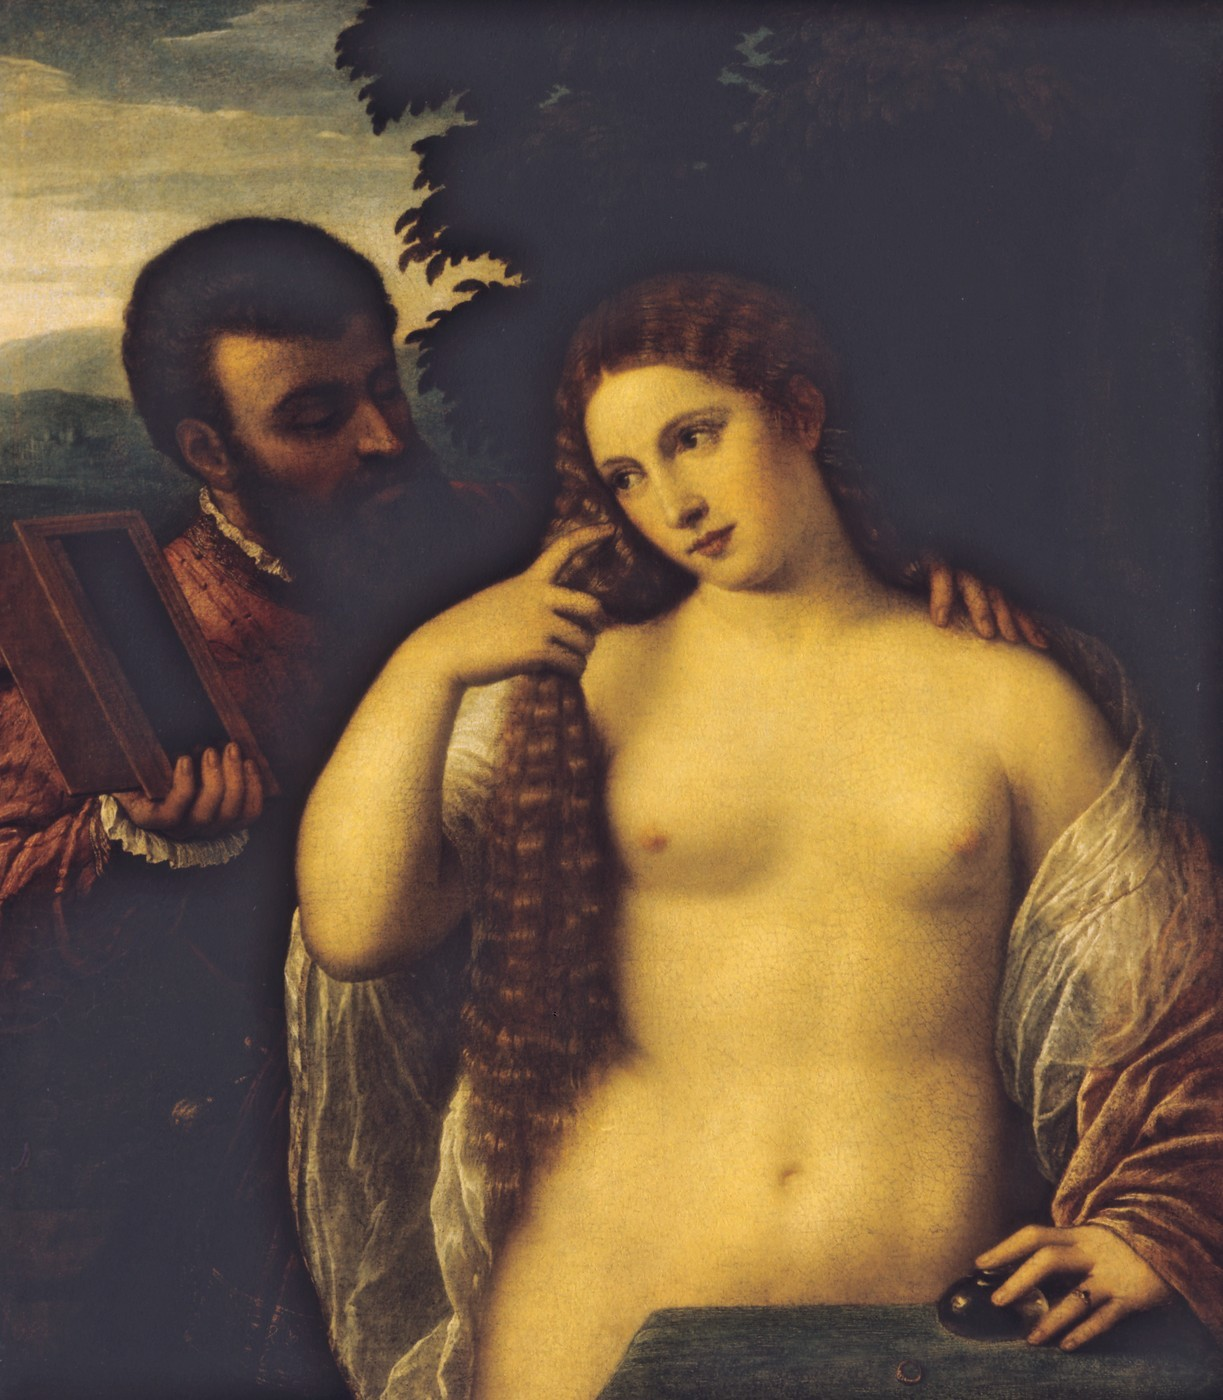 Allégorie (Alfonso d'Este et Laura Diante) attribué à Titian  (Source : National Gallery of Art (Washington) via Bildindex).